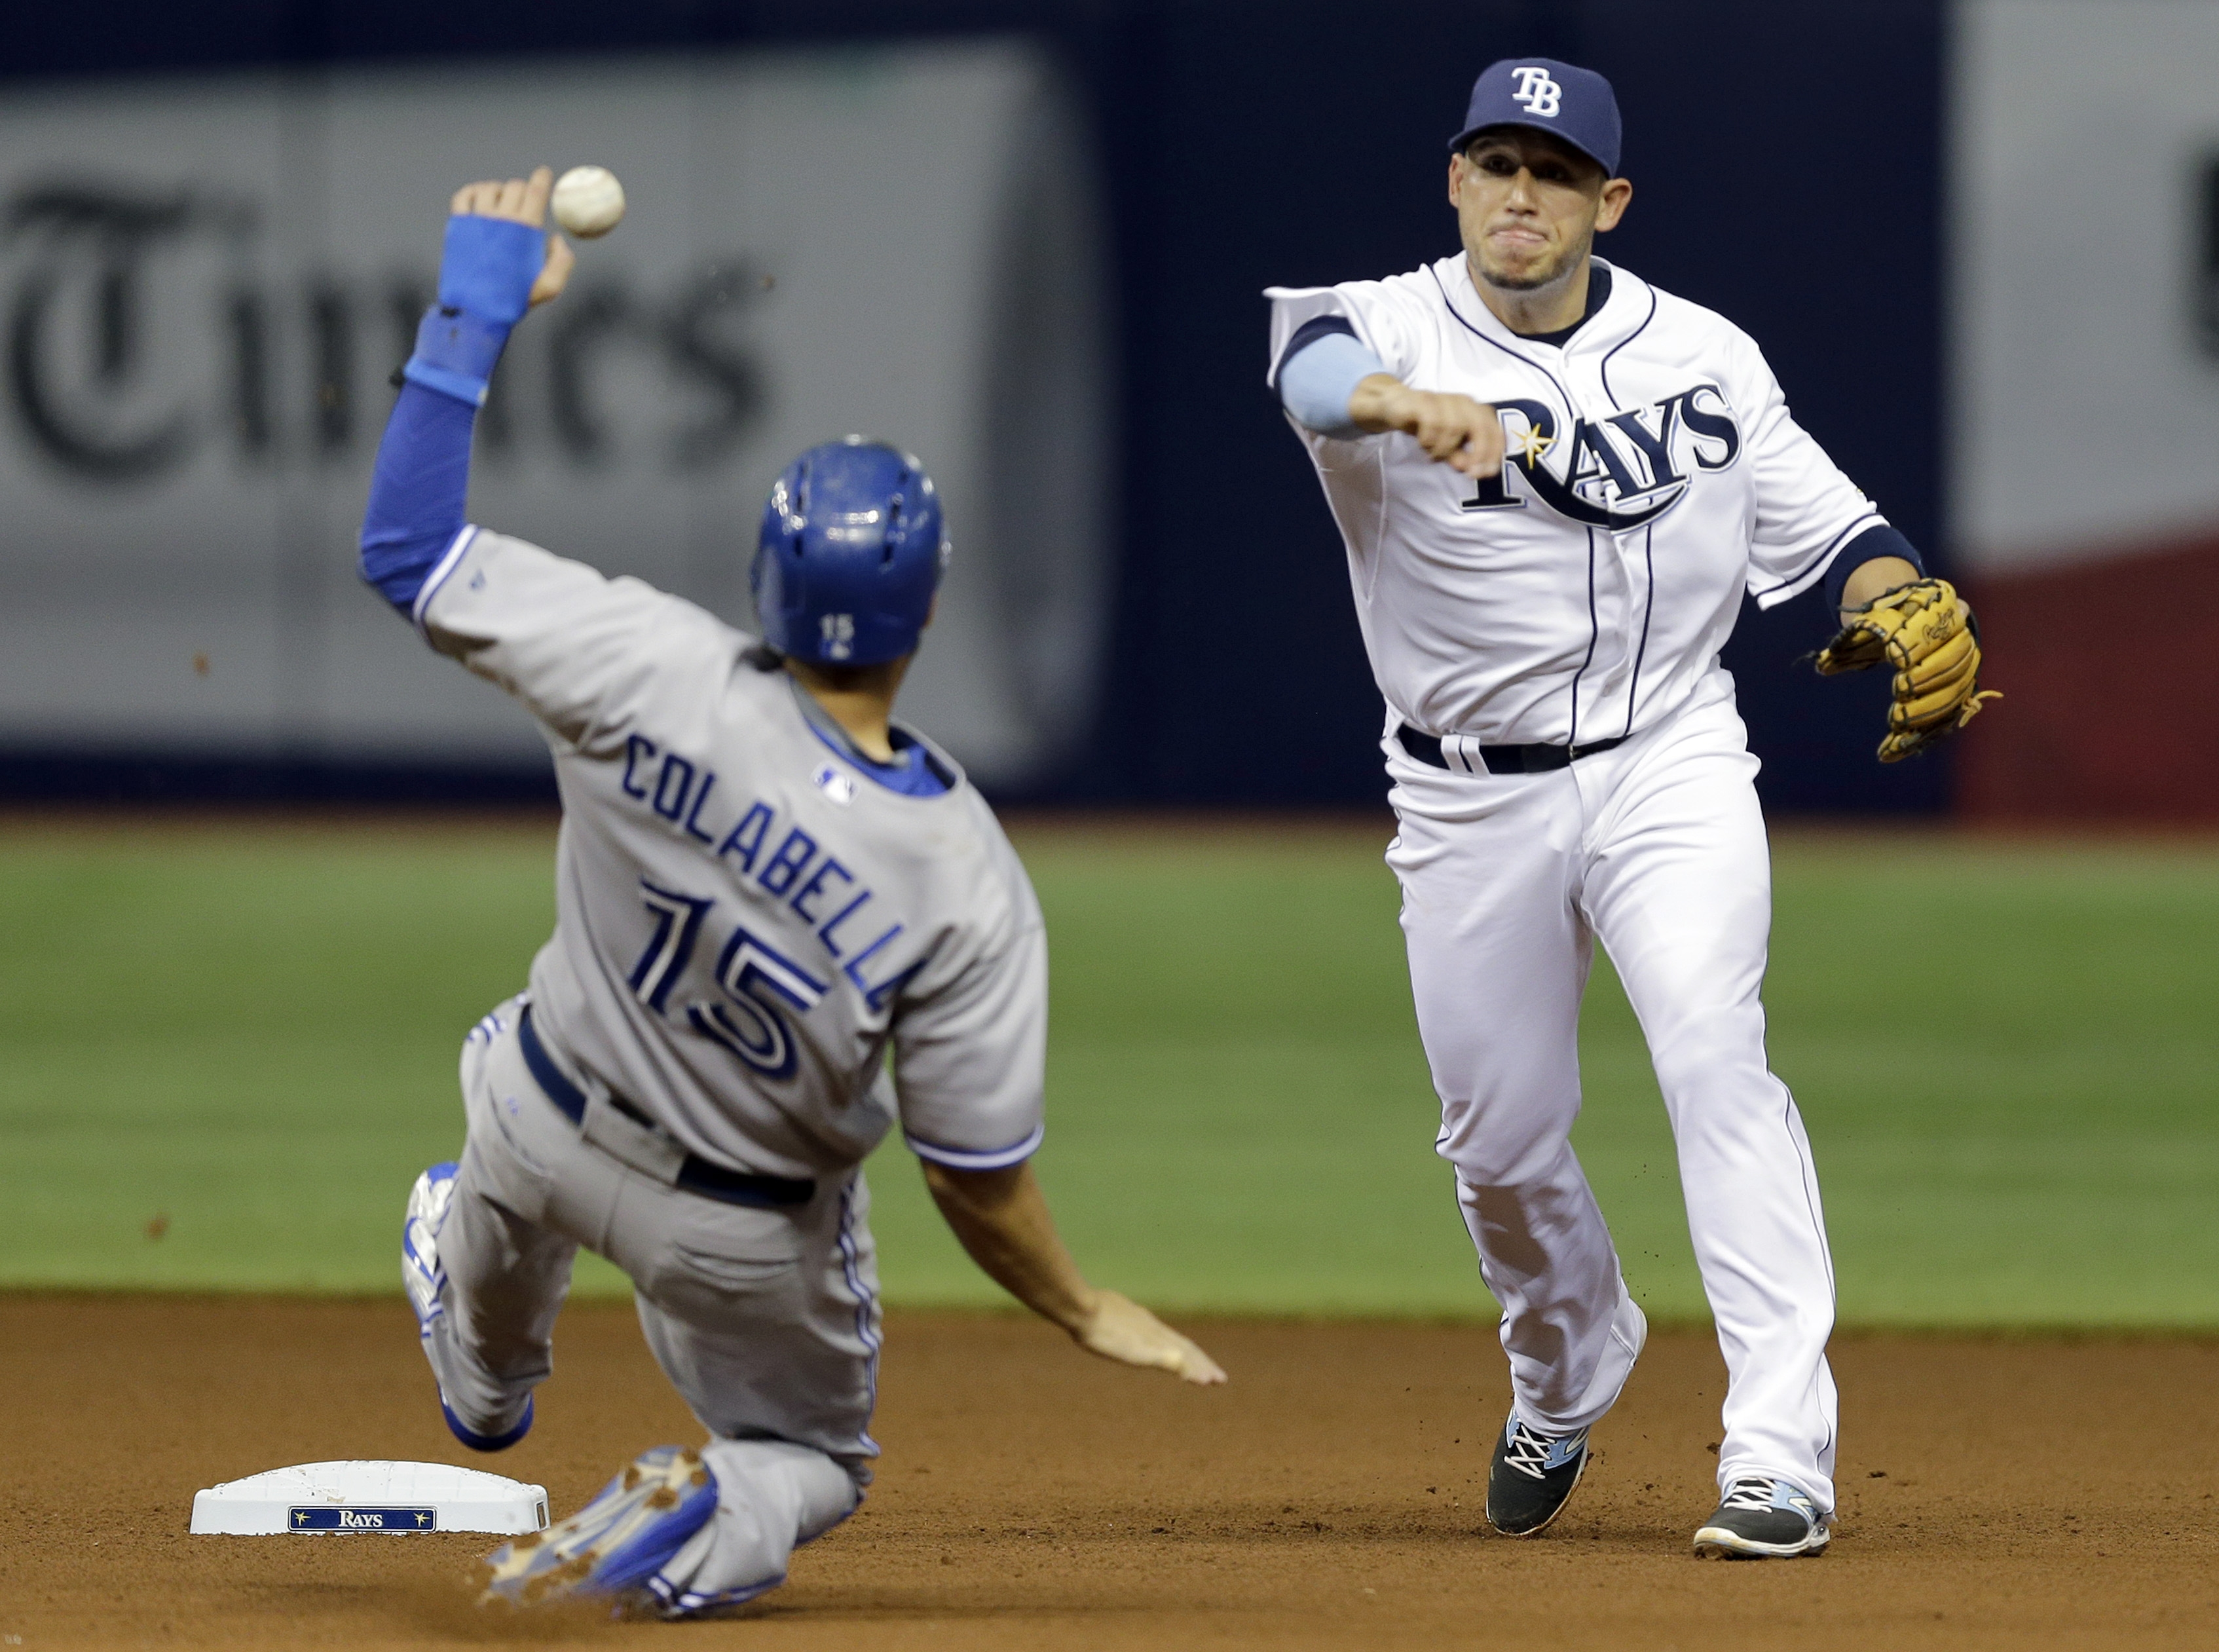 Tampa Bay Rays shortstop Asdrubal Cabrera, right, forces Toronto Blue Jays' Chris Colabello at second base and relays the throw to first base in time to turn a double play on Ezequiel Carrera during the fourth inning of a baseball game Monday, June 22, 20